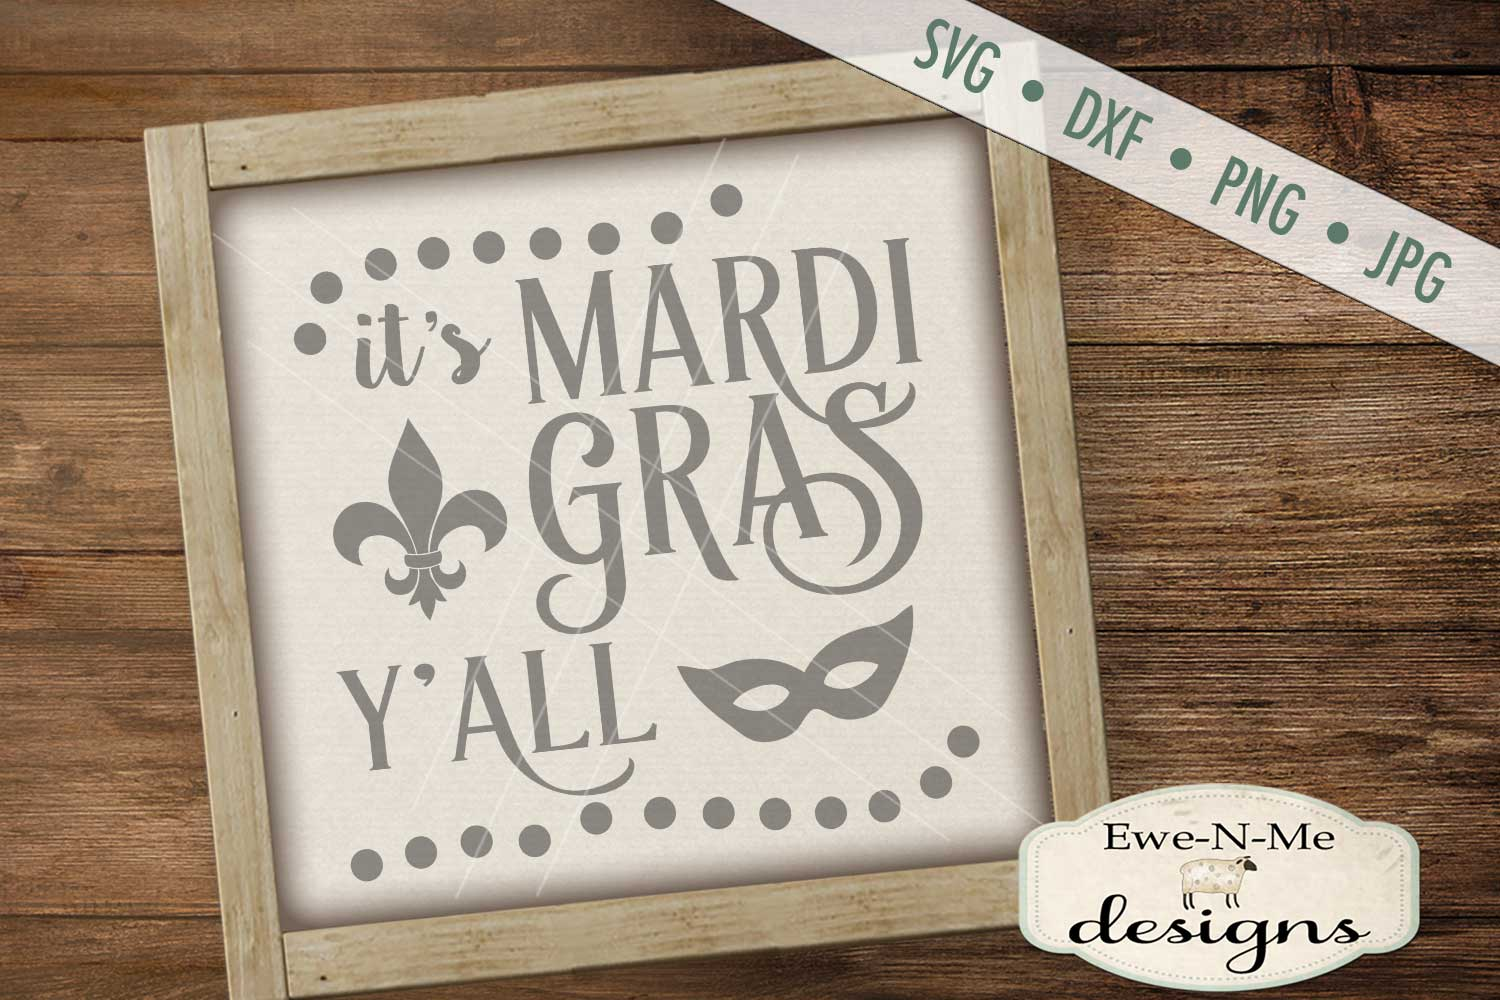 It's Mardi Gras Y'all - SVG DXF Files example image 1